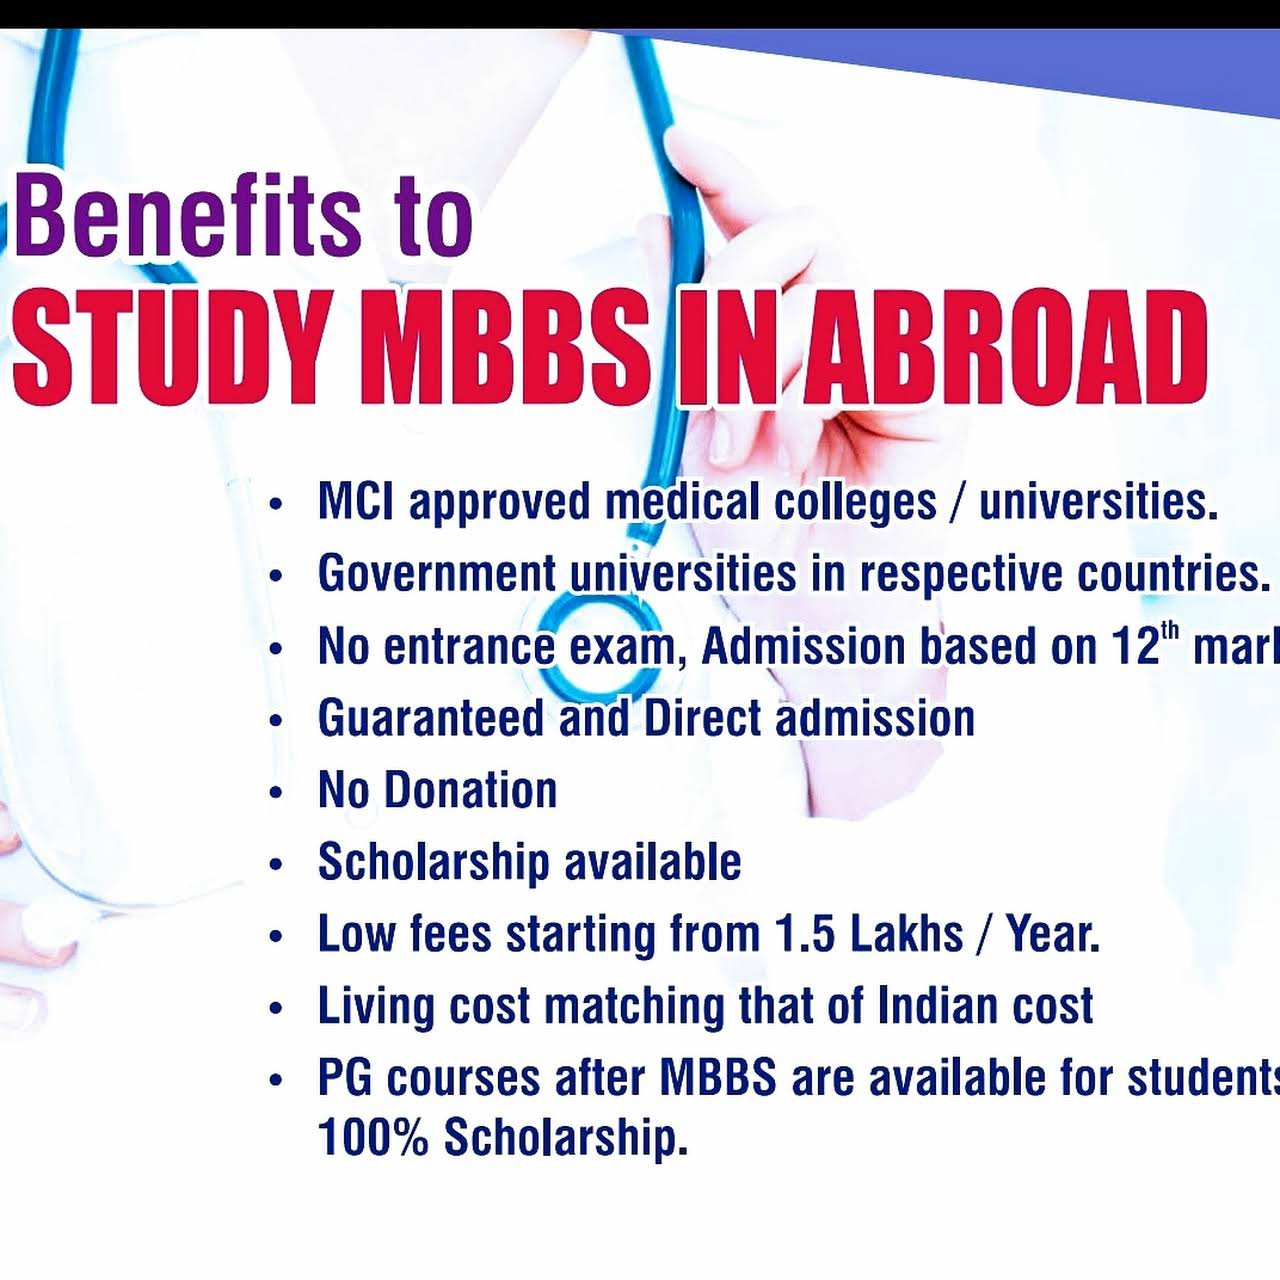 Leobiss International - Educational Consultant STUDY MBBS